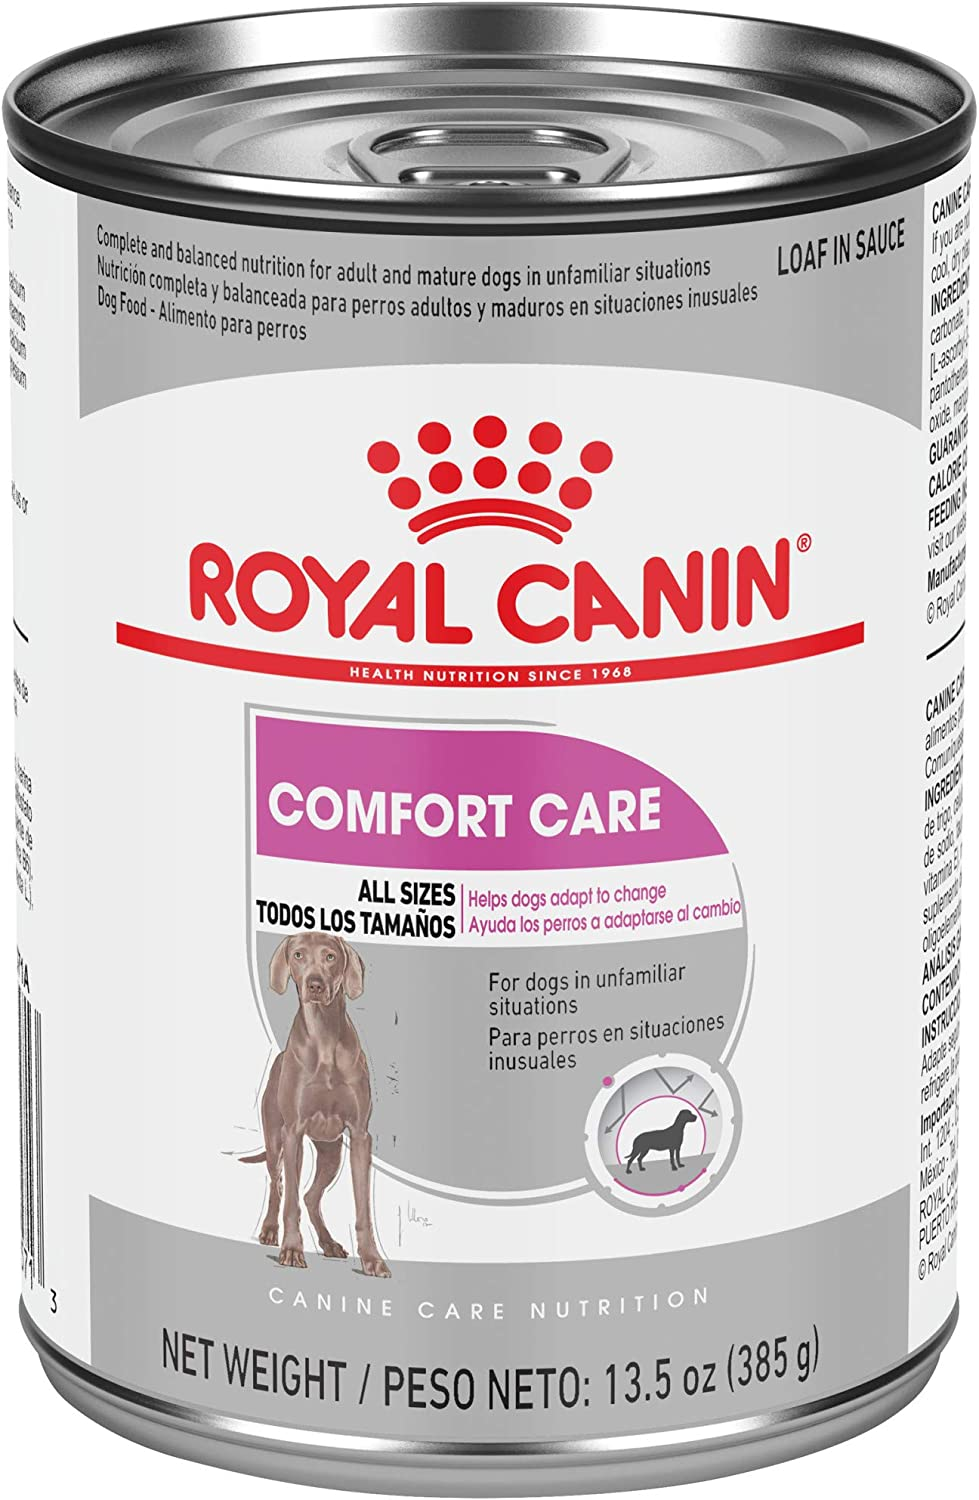 Royal Canin Canine Care Nutrition Comfort Care Loaf in Sauce Canned Dog Food, 13.5 oz (Pack of 12)